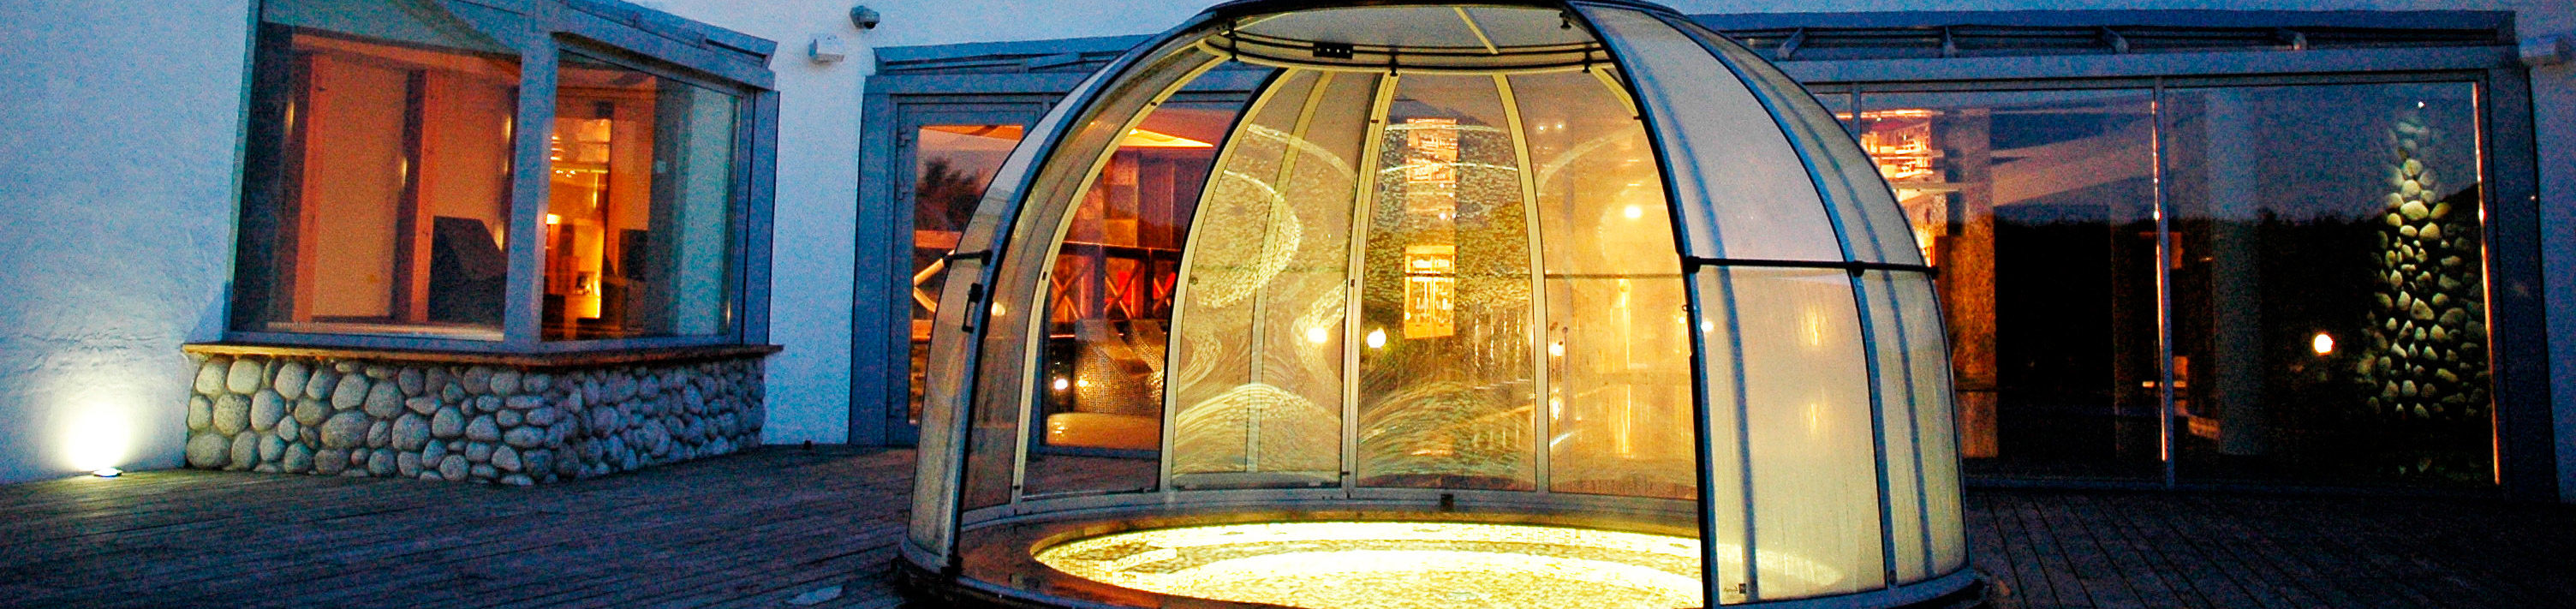 Geopende spa overkapping Spa Dome Orlando